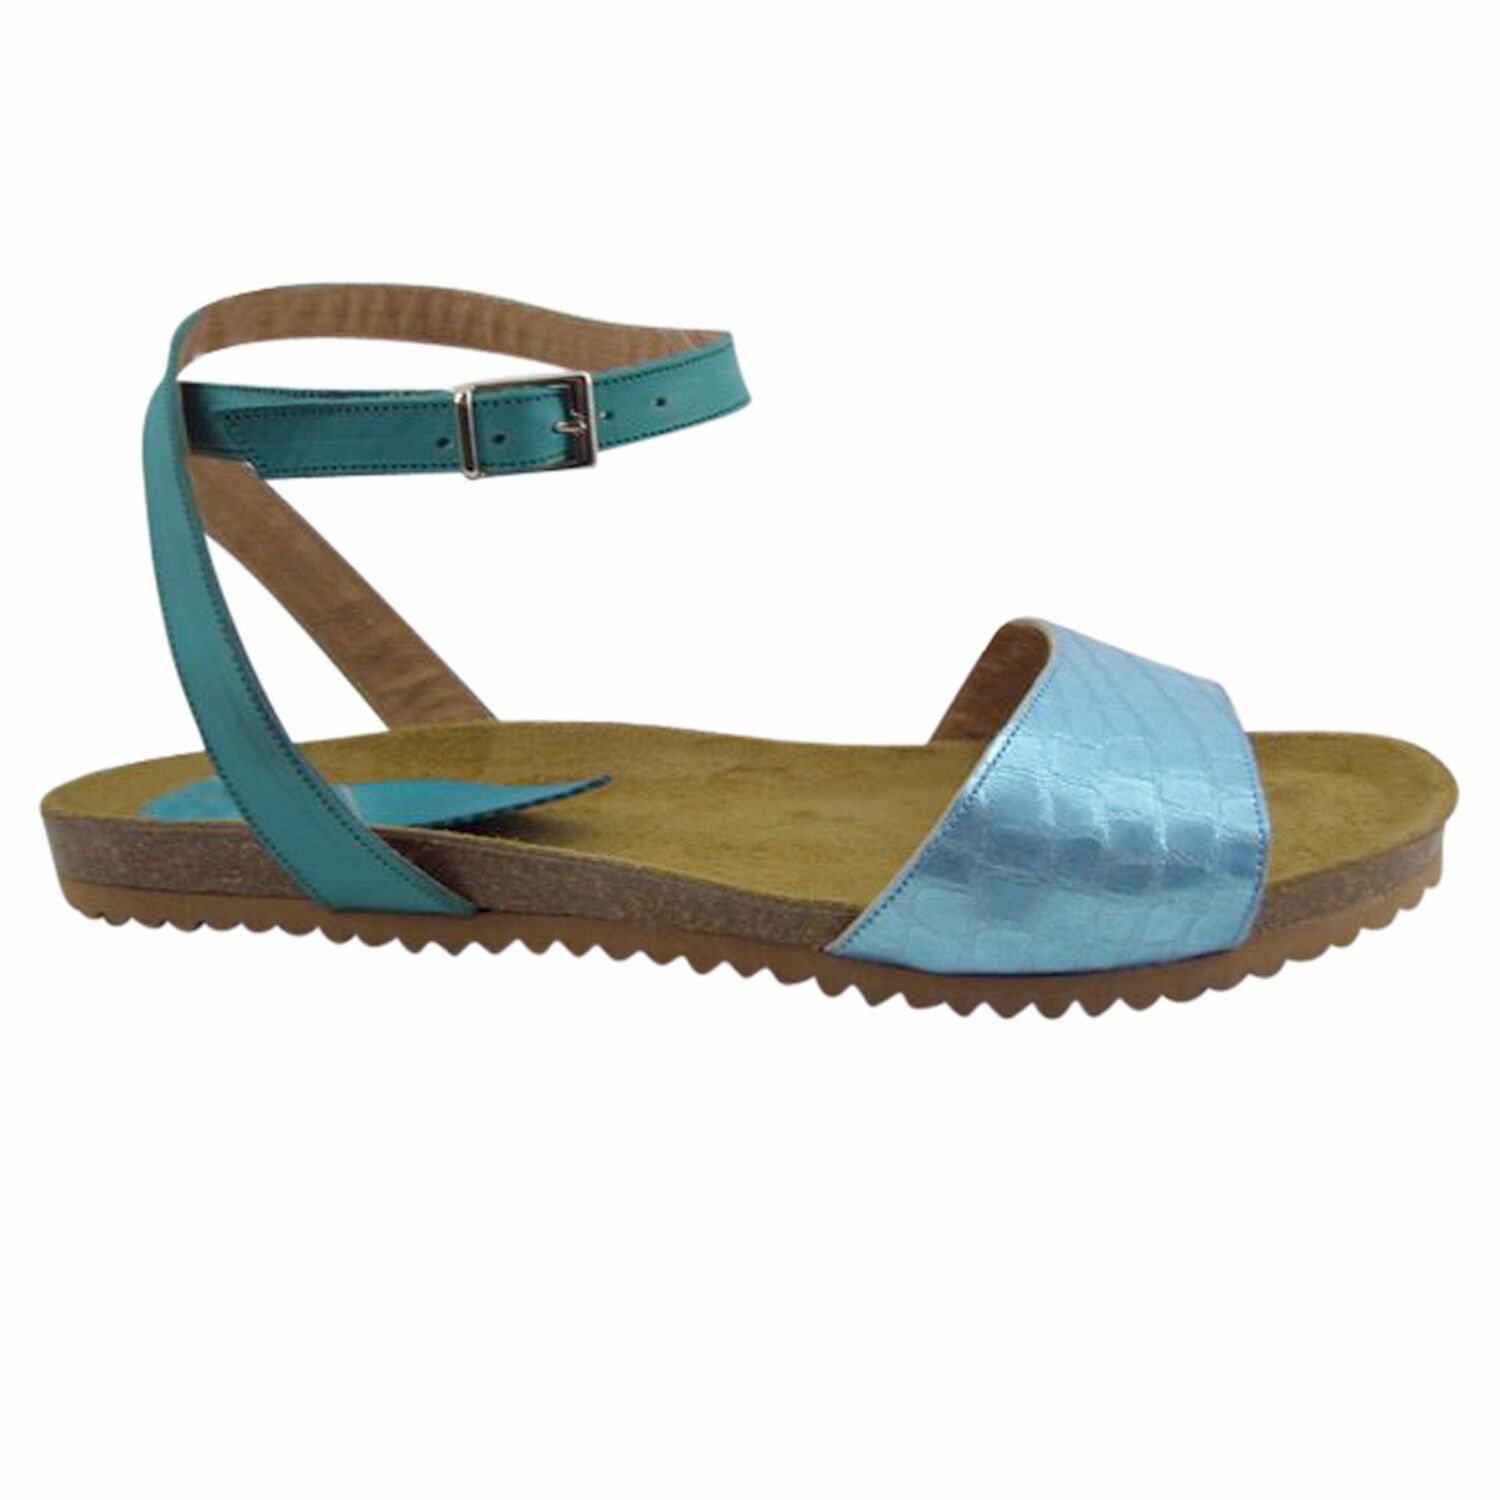 Size 12 bluee Leather & Cork Flat Sandals Made in Spain Large Size Women's shoes